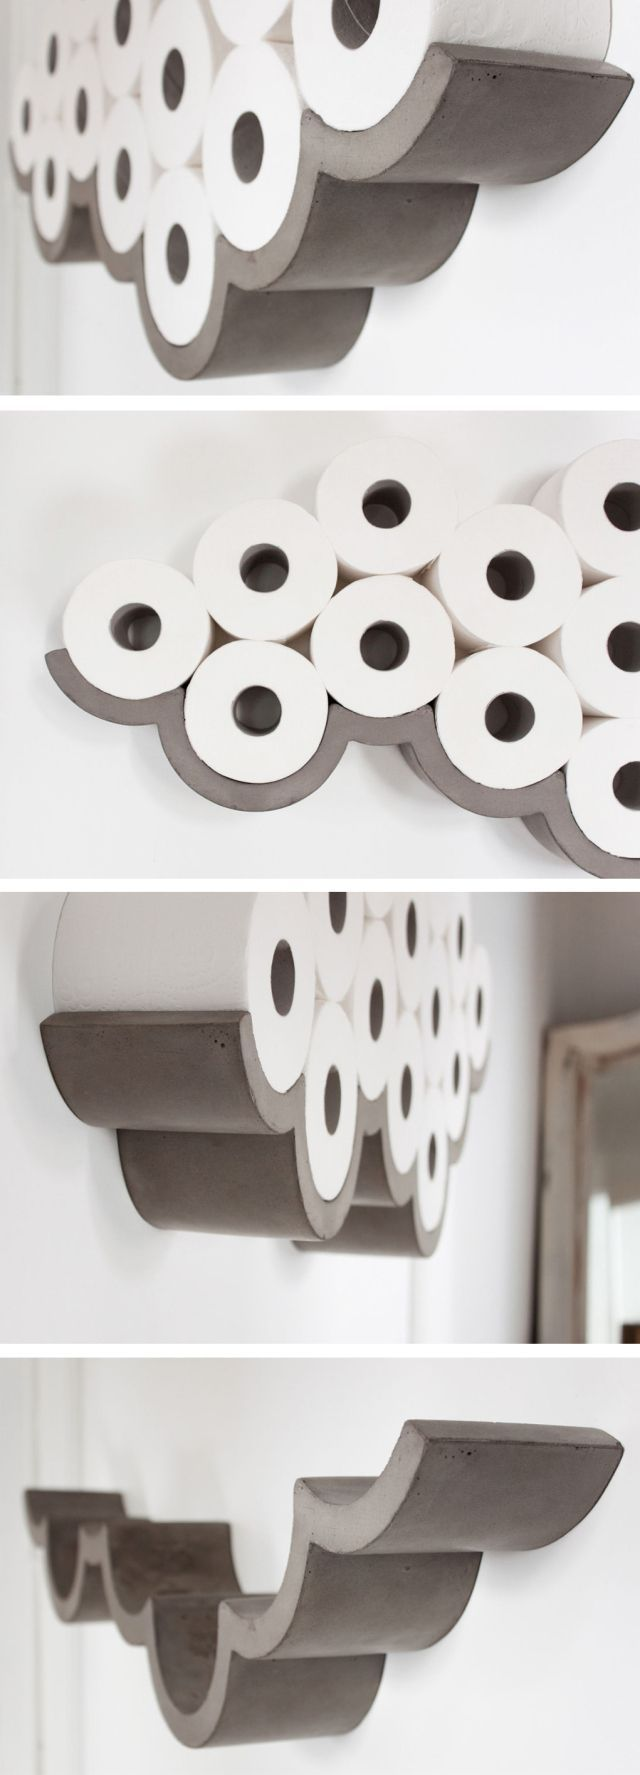 21Feb2015 Awesome Products: Cloud concrete toilet roll holder categories: Awesome Products, Design: